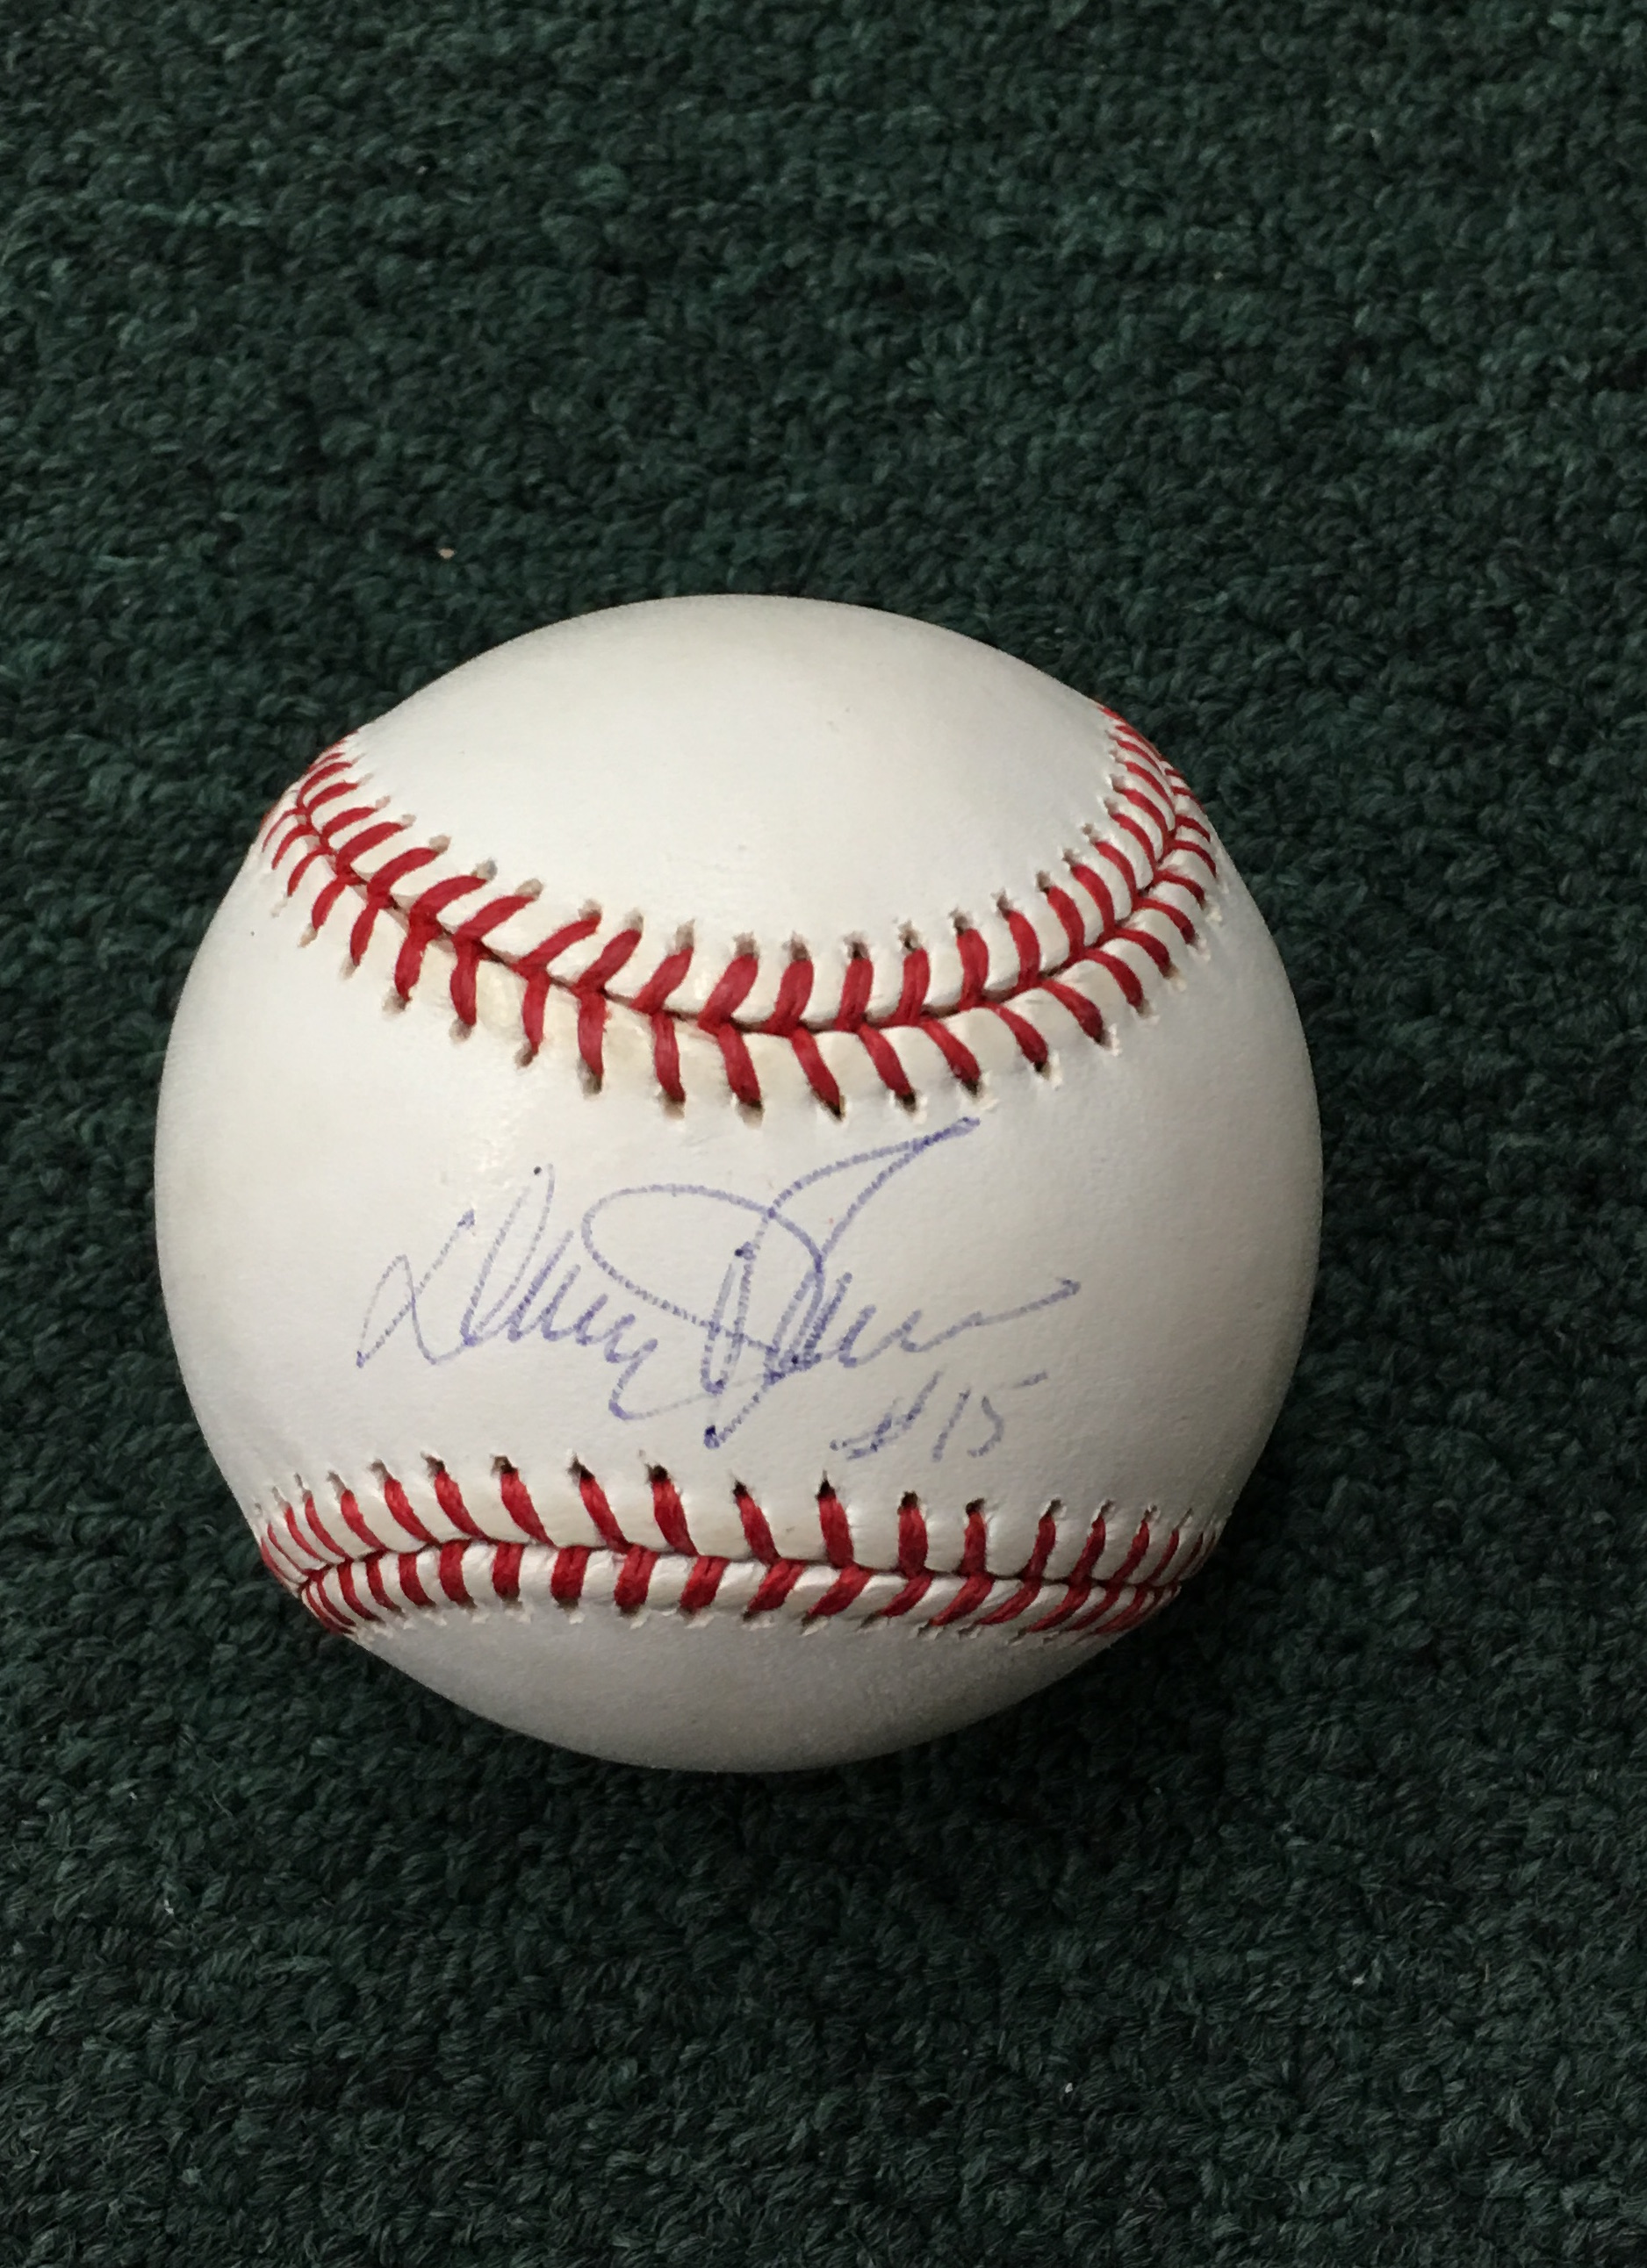 Davey Johnson autographed baseball (PSA)